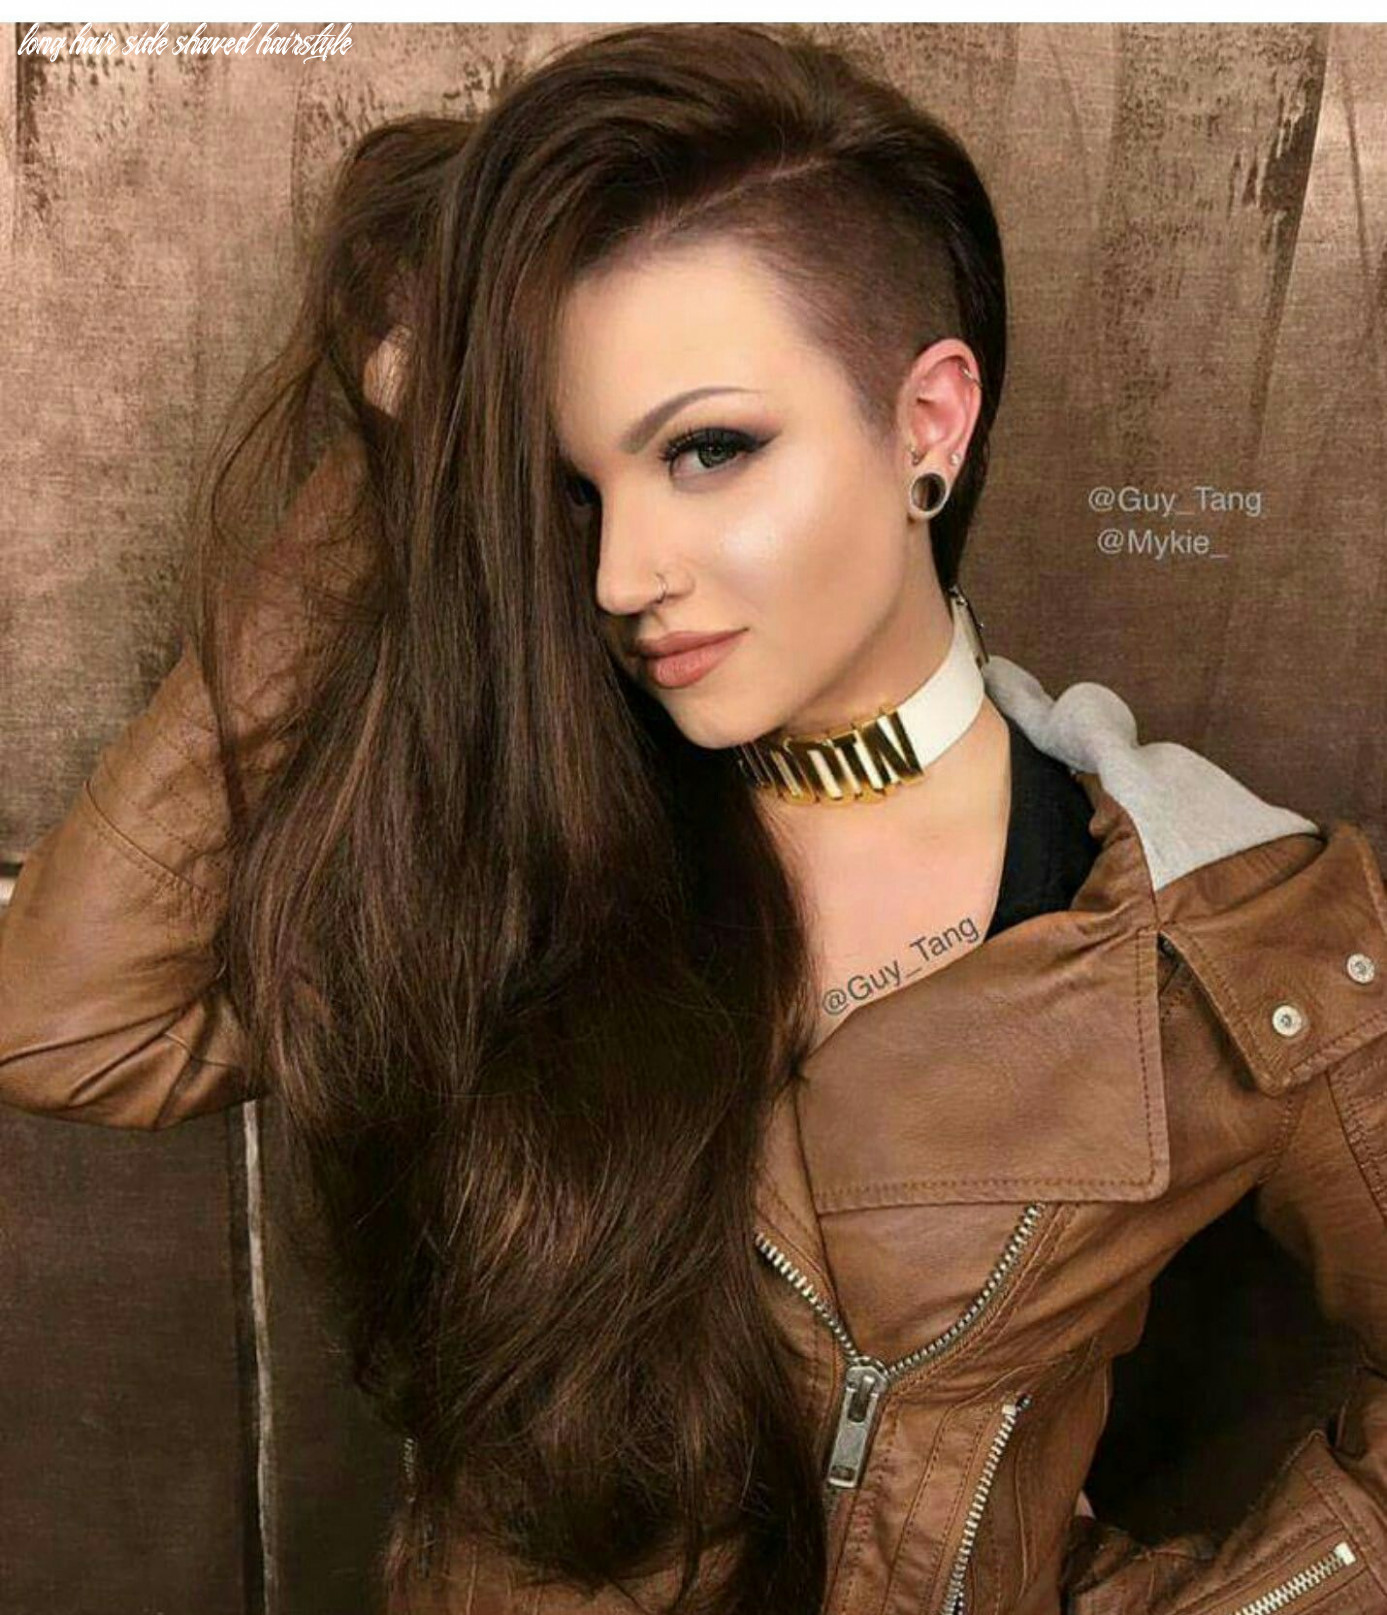 Mykie glam and gore guy tang brown side shave hair hairstyle (with